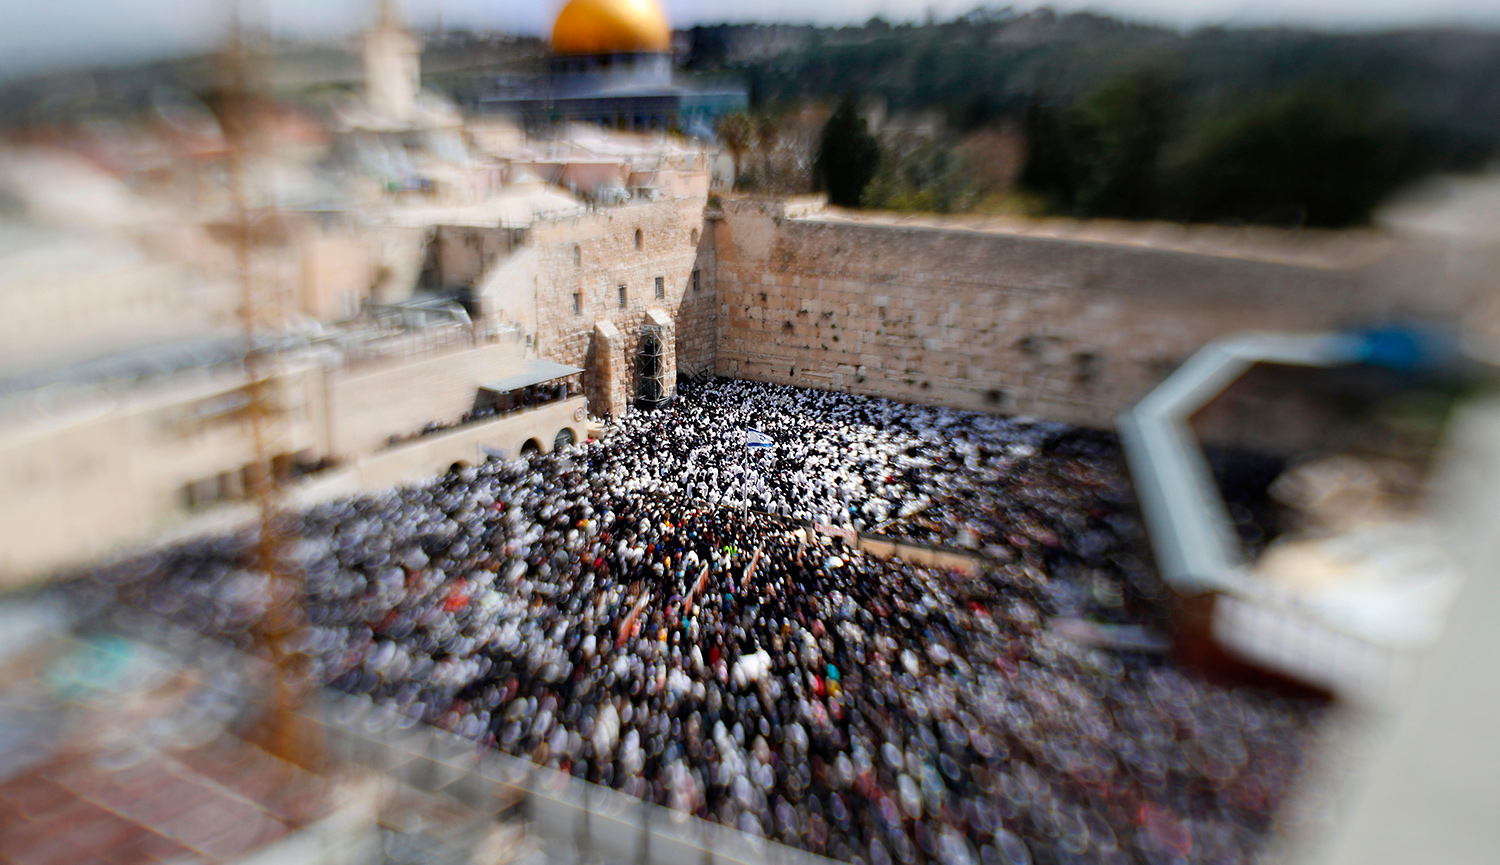 A blurred view of the Western Wall during Passover in April 2019. THOMAS COEX/AFP/Getty Images.